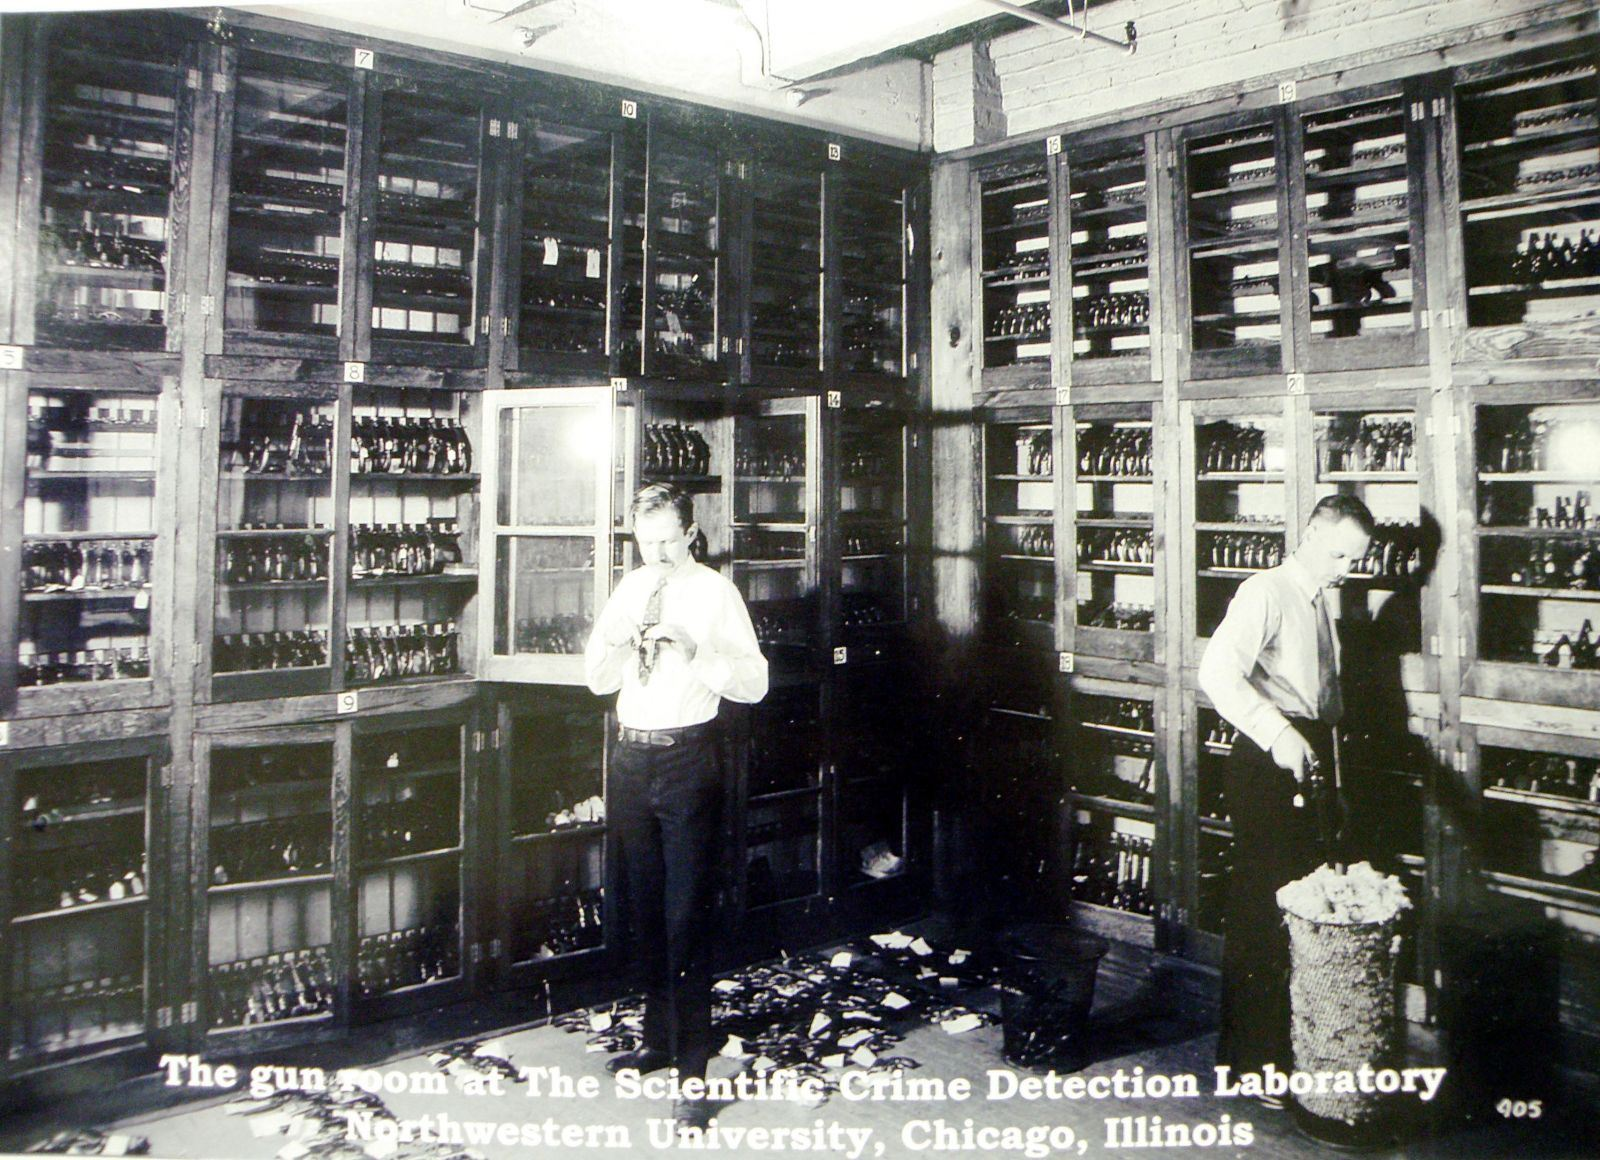 Gun Room at the Scientific Crime Detection Laboratory at Northwestern University